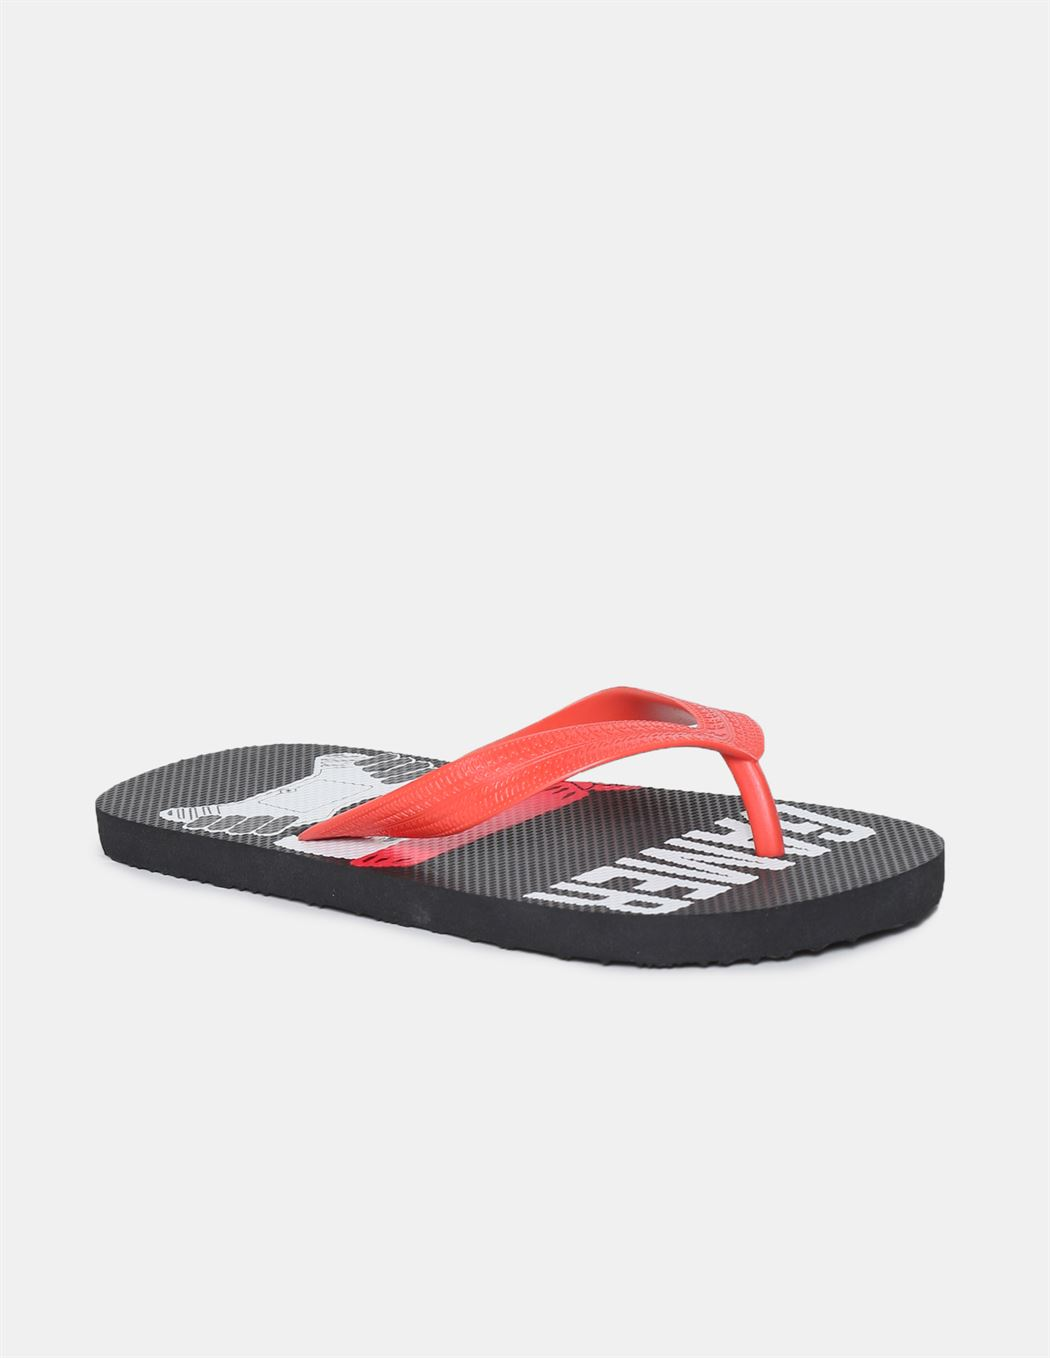 The Children's Place Boys Red And Black V-Strap Printed Flip Flops